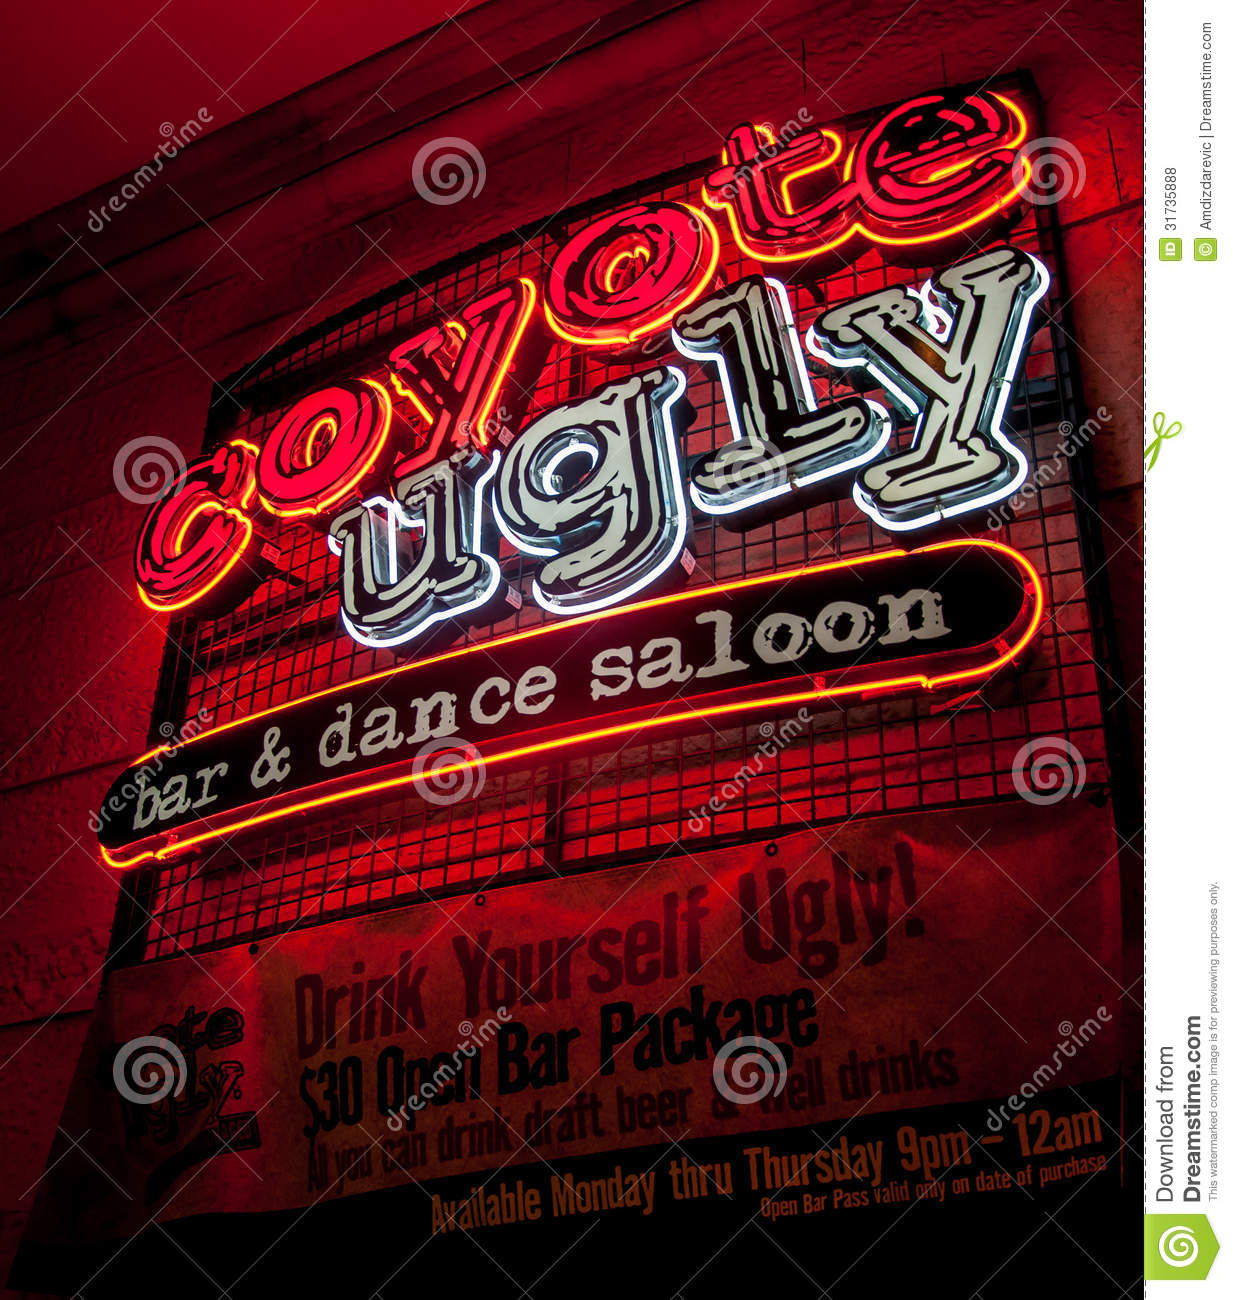 Coyote Ugly Neon Sign - Las Vegas Editorial Stock Photo - Image ...